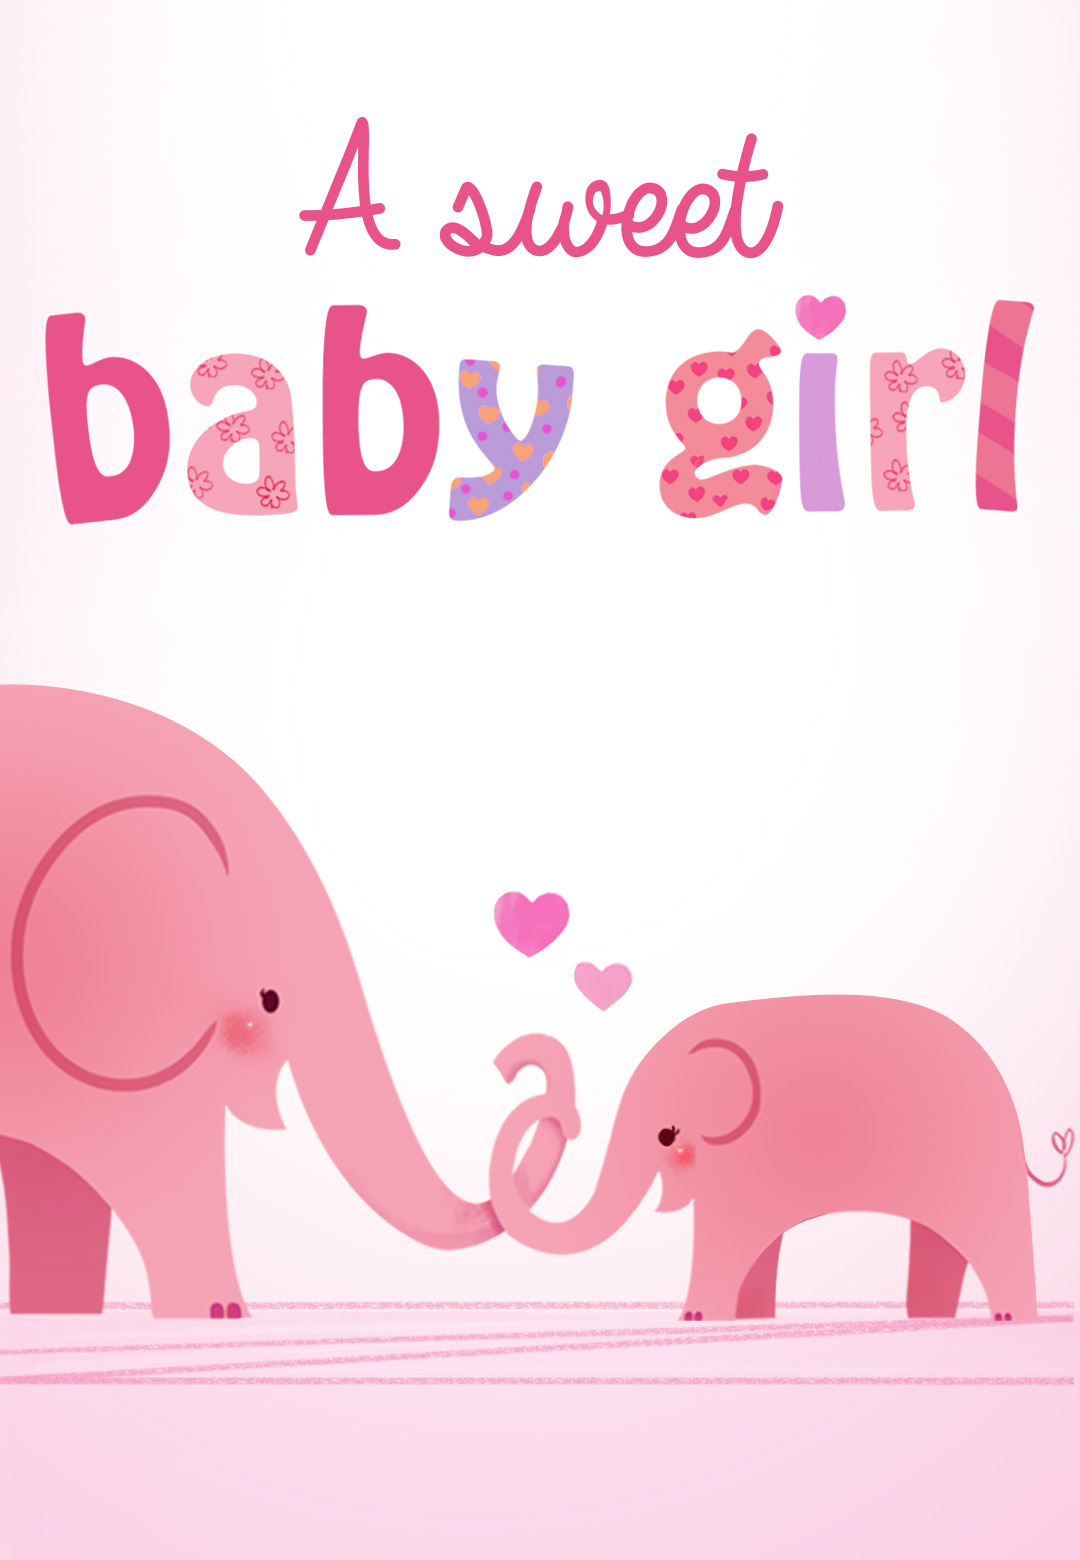 Forever In Your Heart - Free Baby Shower & New Baby Card | Greetings - Free Printable Baby Shower Card